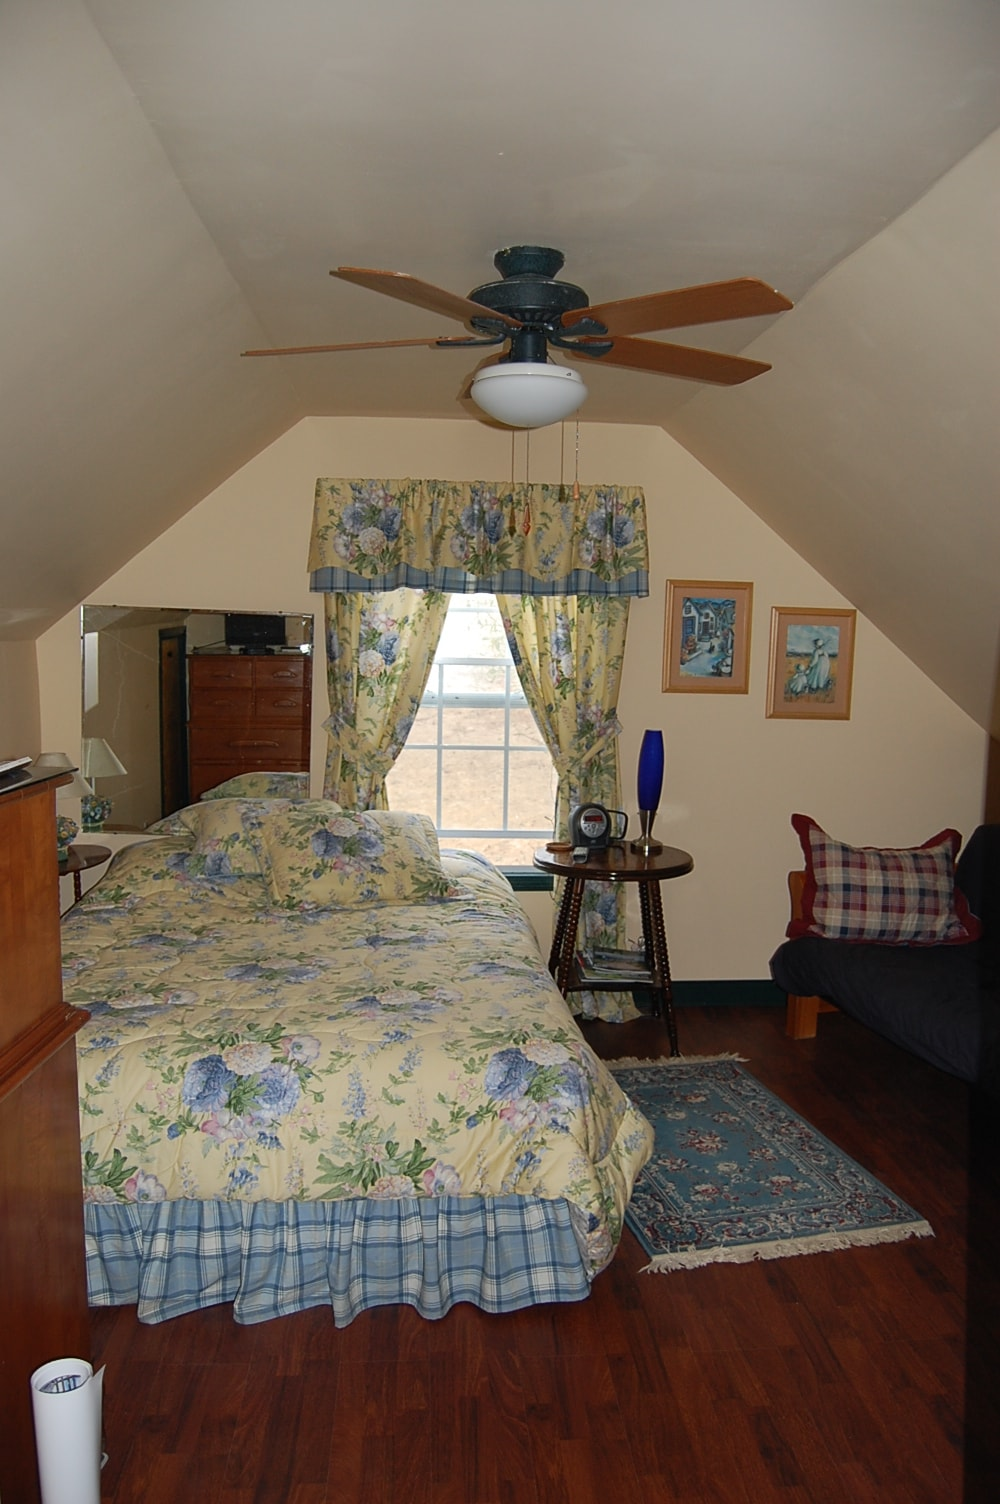 Bedroom with queen bed and double futon couch/bed